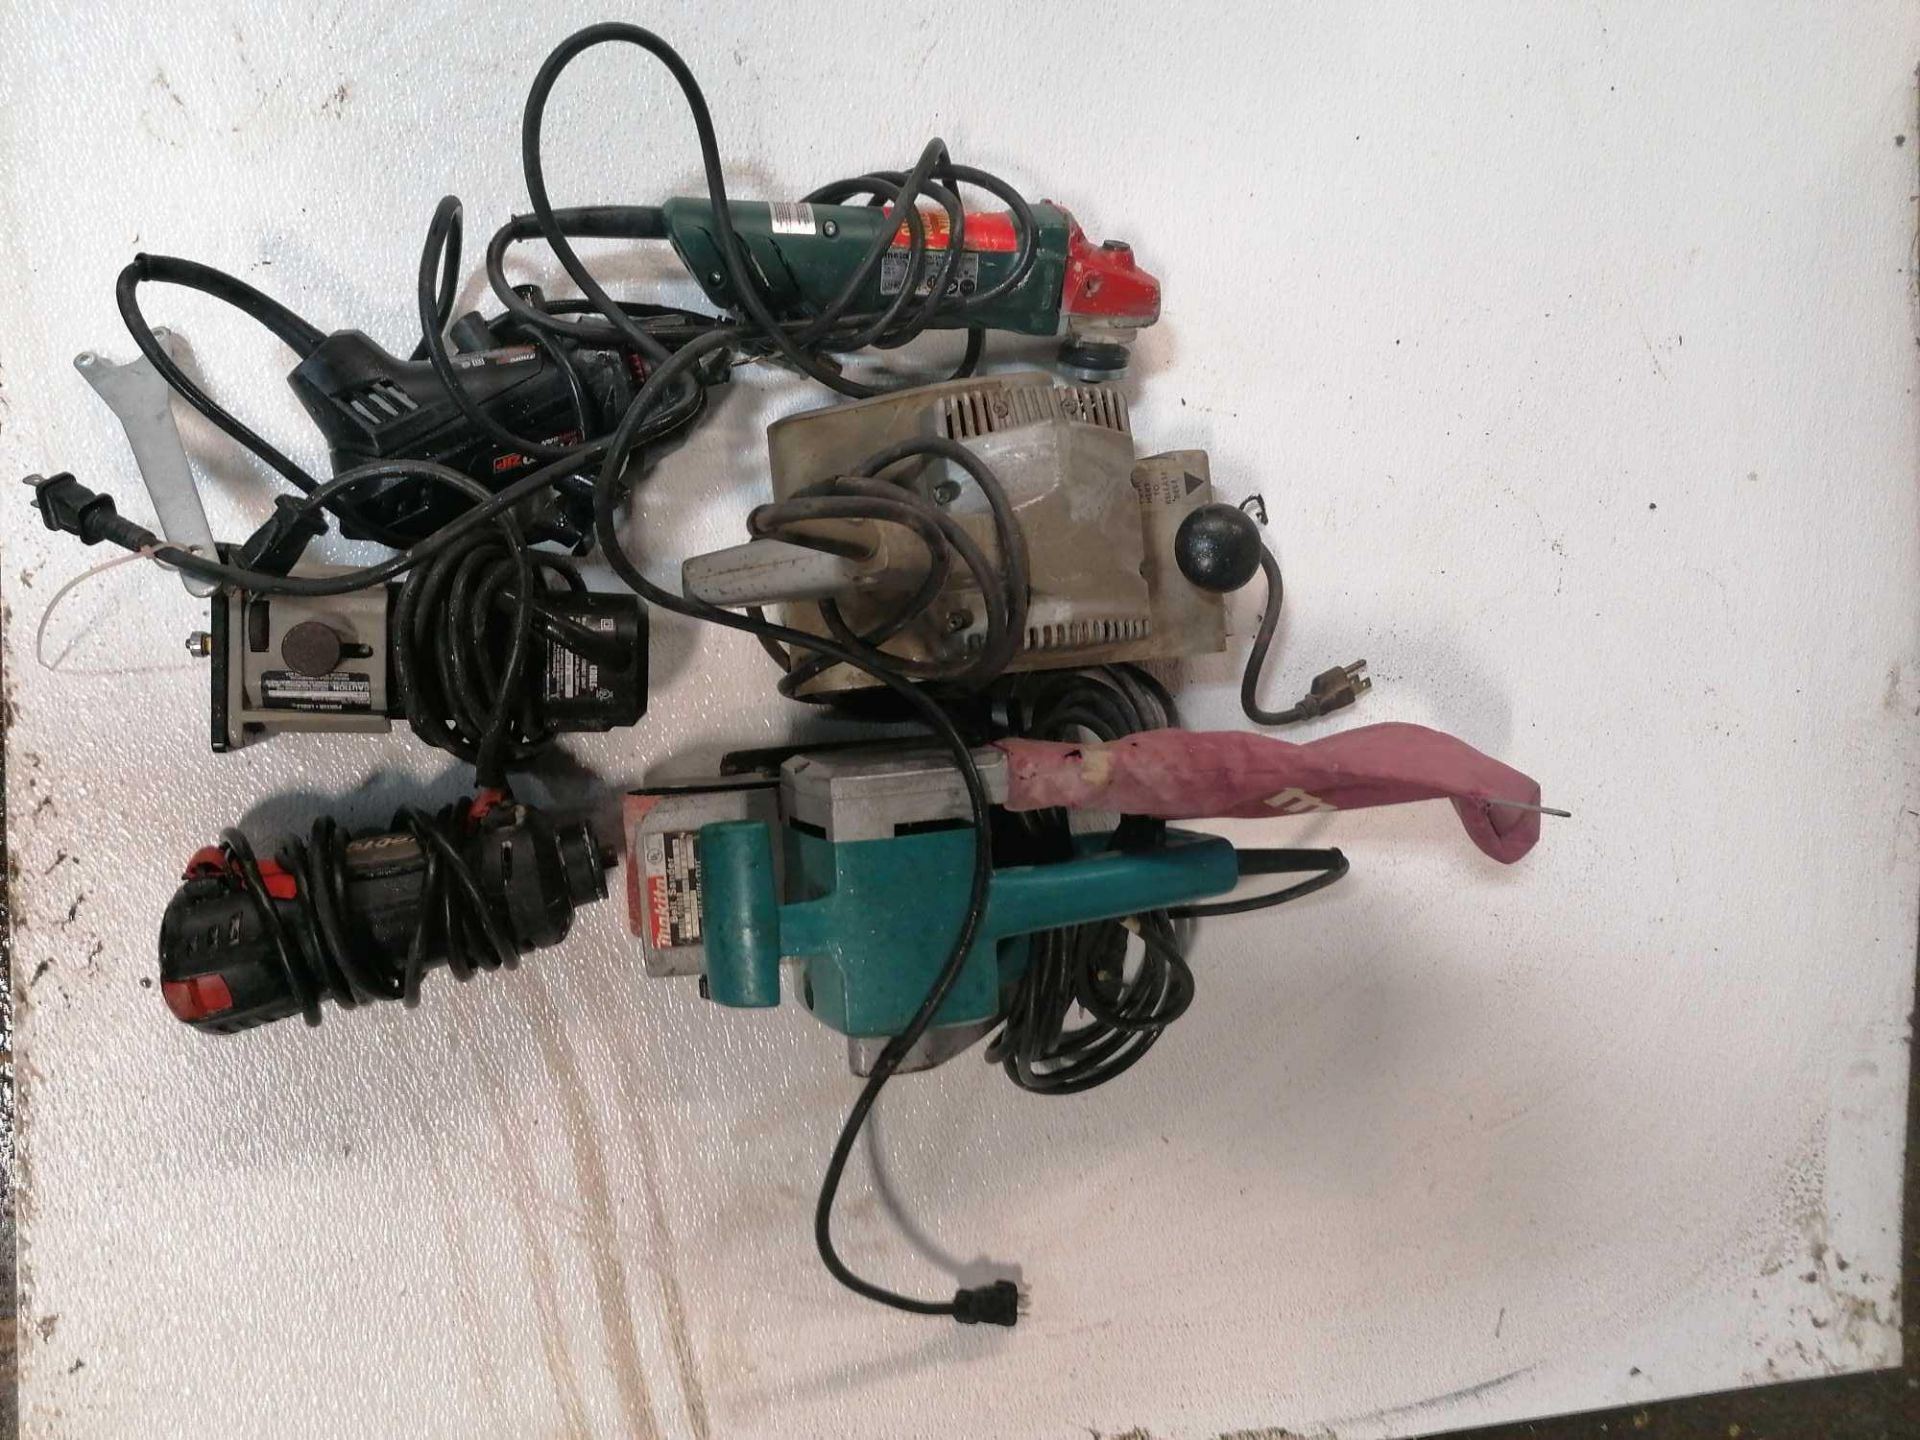 Lot 30 - (1) Router, (2) RotoZip Drywall Routers, (1) Angle Grinder & (2) Belt Sanders